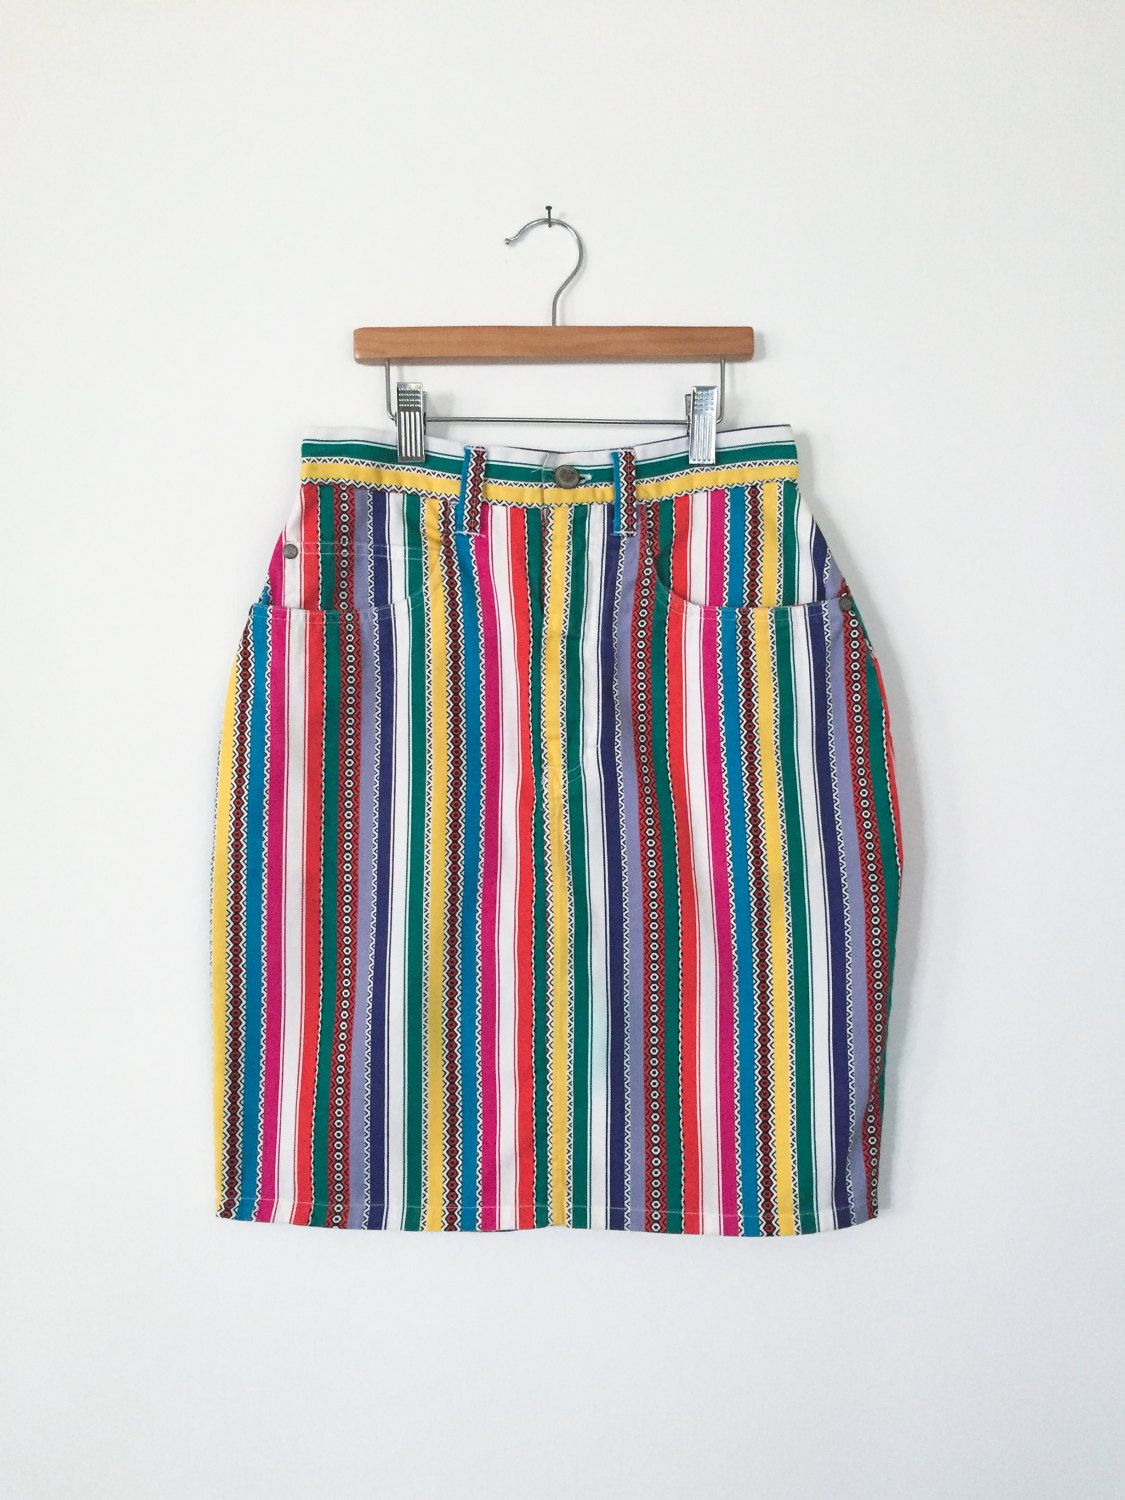 "Vintage 1980s/1990s ""P. S. Gitano Jeans Wear"" Multi-Color Patterned Striped Denim High Waisted Mini Pencil Skirt- Women's size 3/4 by MeGustaVintage on Etsy"